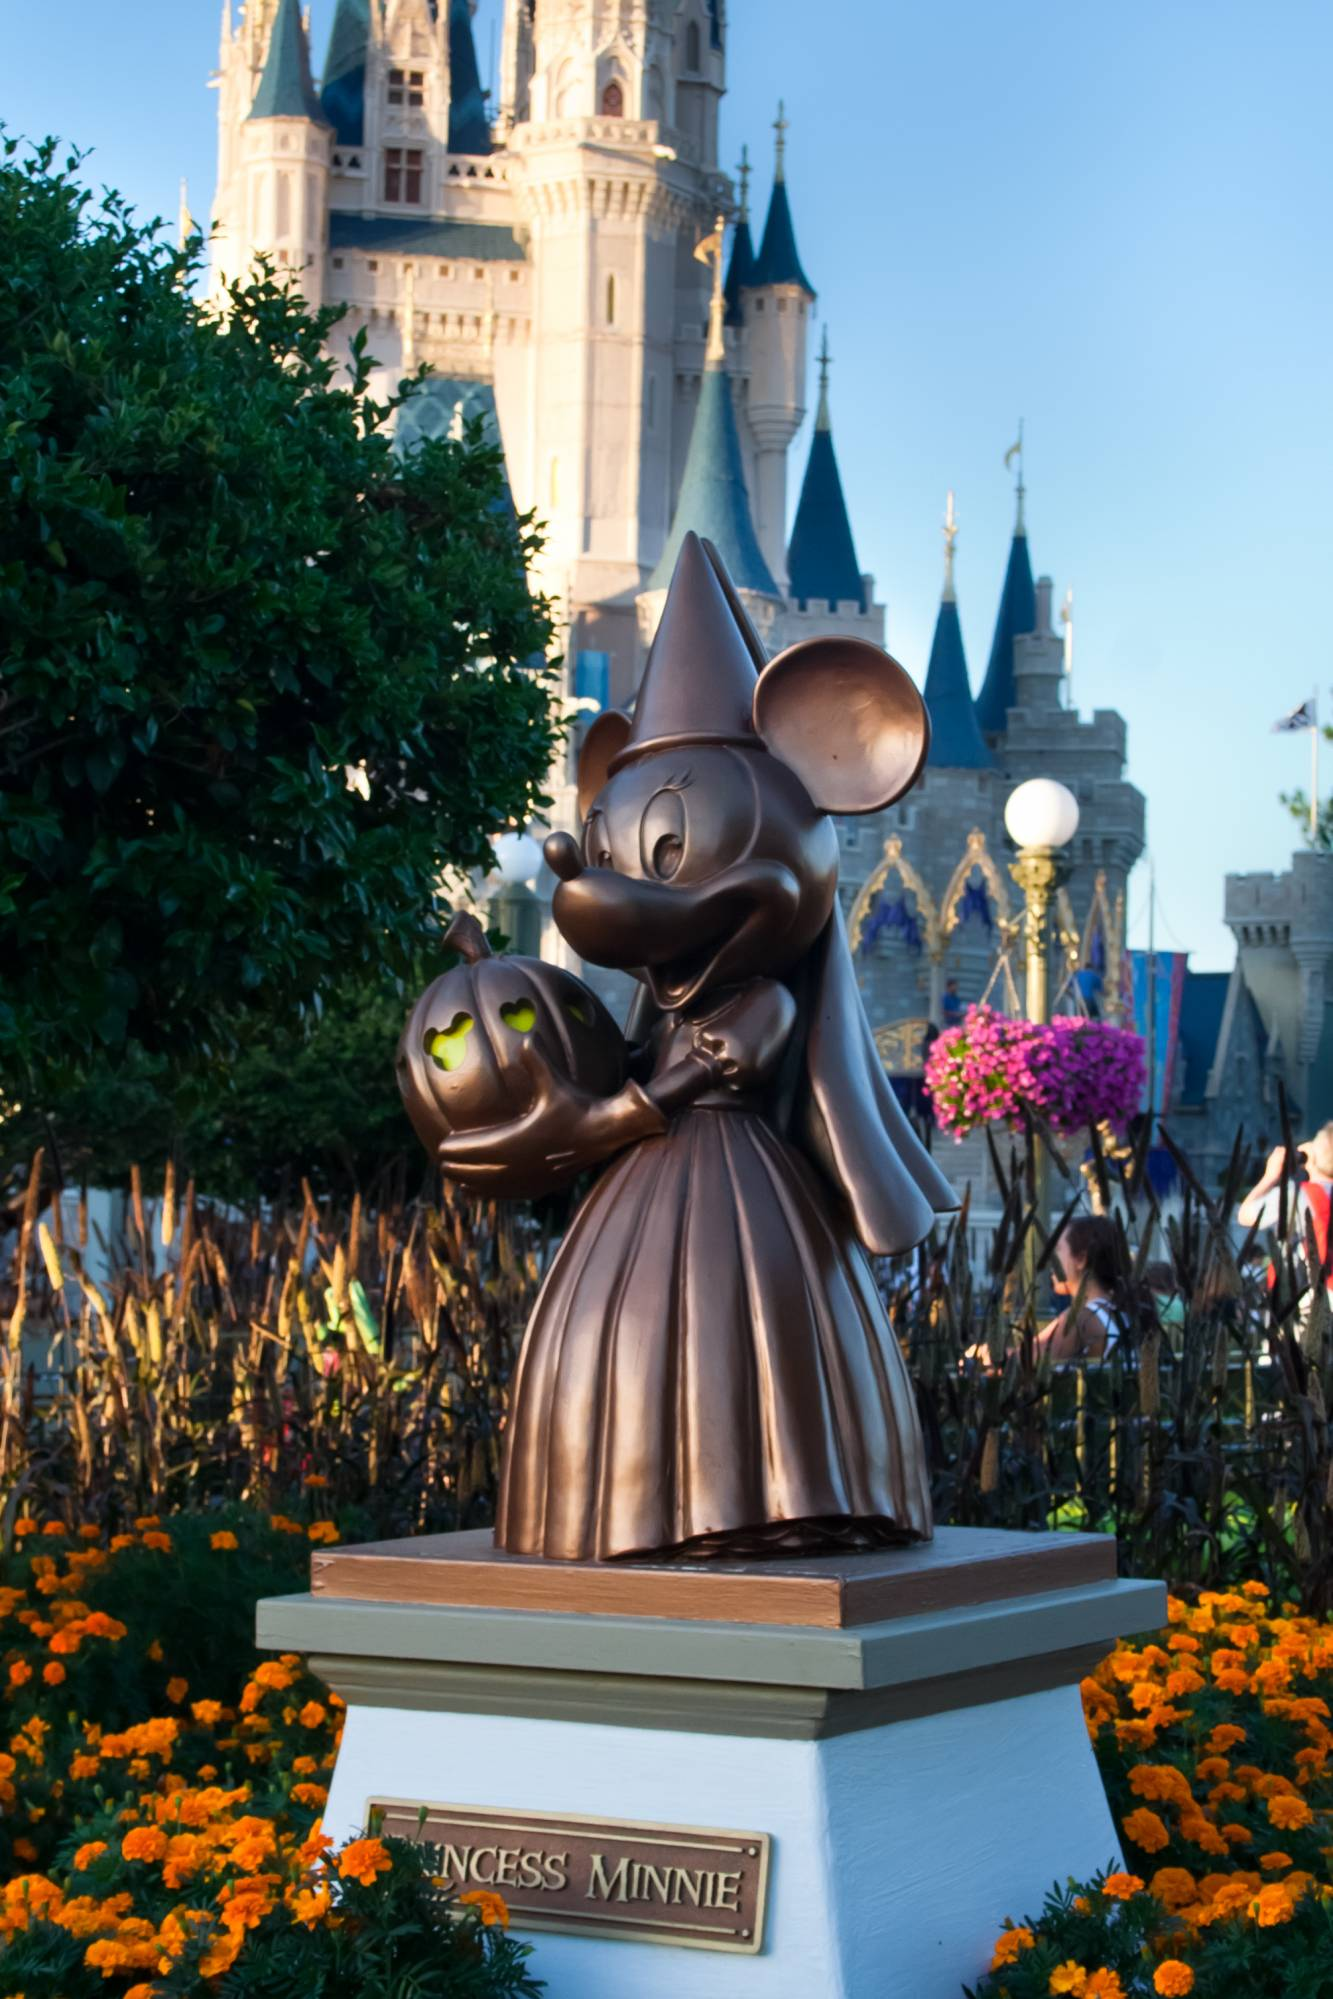 Princess Minnie Statue